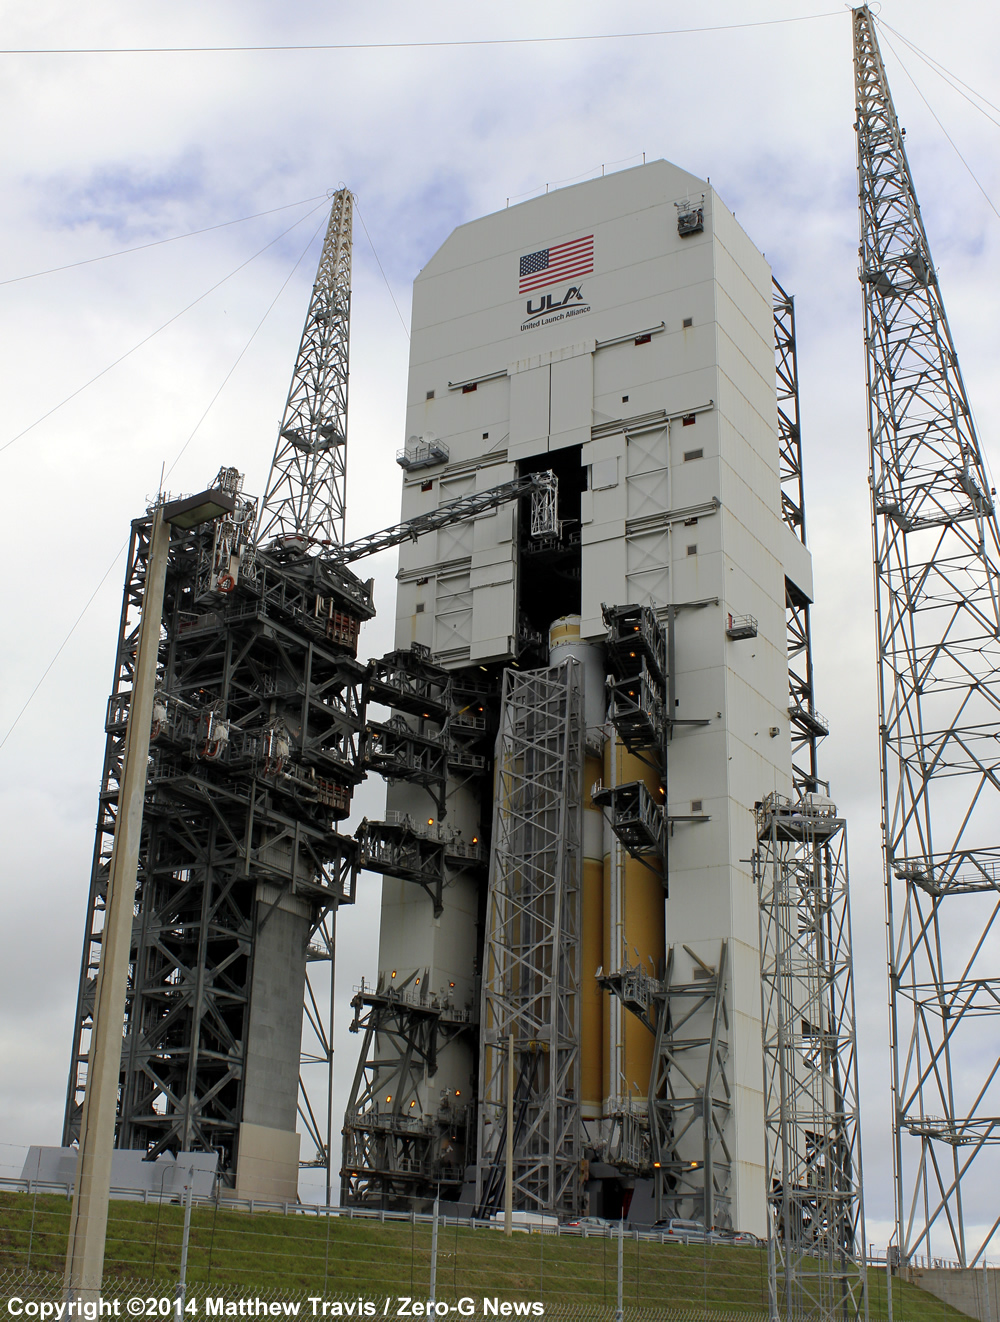 NASA looks to the future as workers raise a United Launch Alliance Delta 4 rocket on the pad at Space Launch Complex 37. This Delta vehicle will power the first test flight of NASA's Orion spacecraft, the first human spacecraft designed to travel beyond low Earth orbit since the Apollo program. Launch of Exploration Flight Test 1 (EFT-1) is targeted for the morning of December 4. Photo Credit: Matthew Travis / Zero-G News